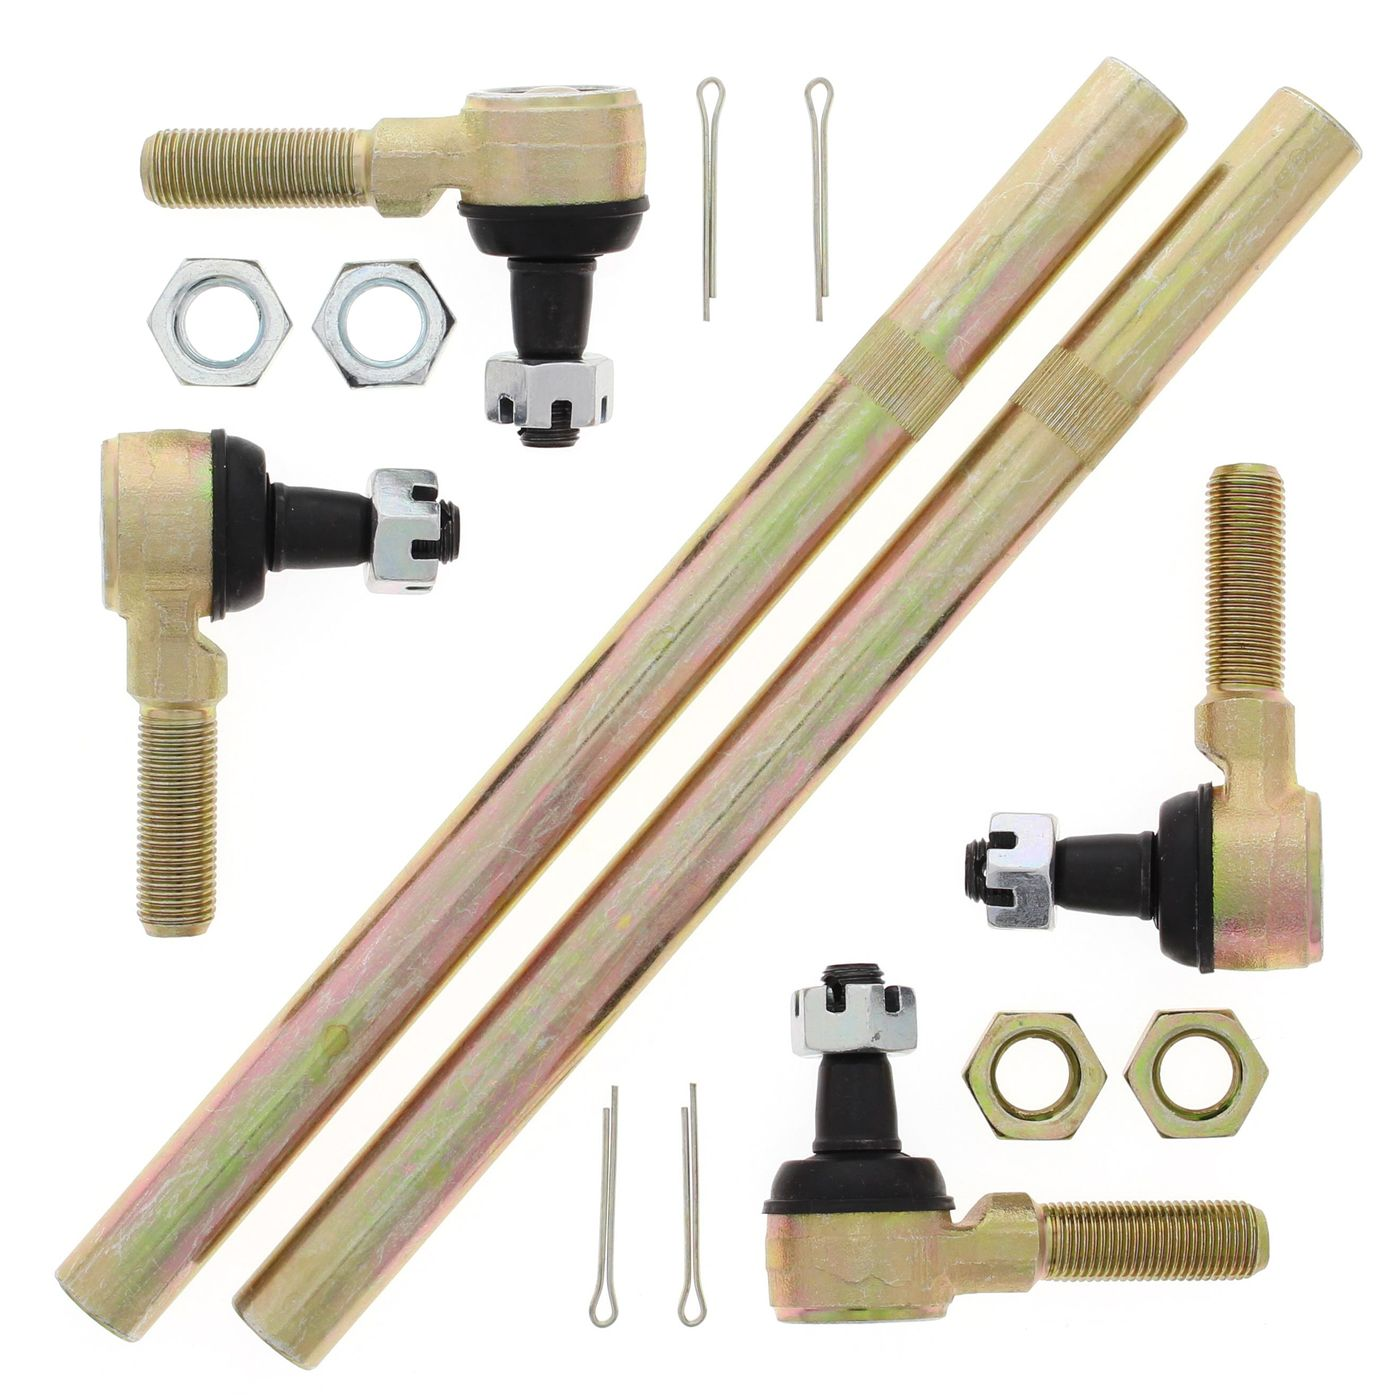 Wrp Tie Rod Kits - WRP521001 image